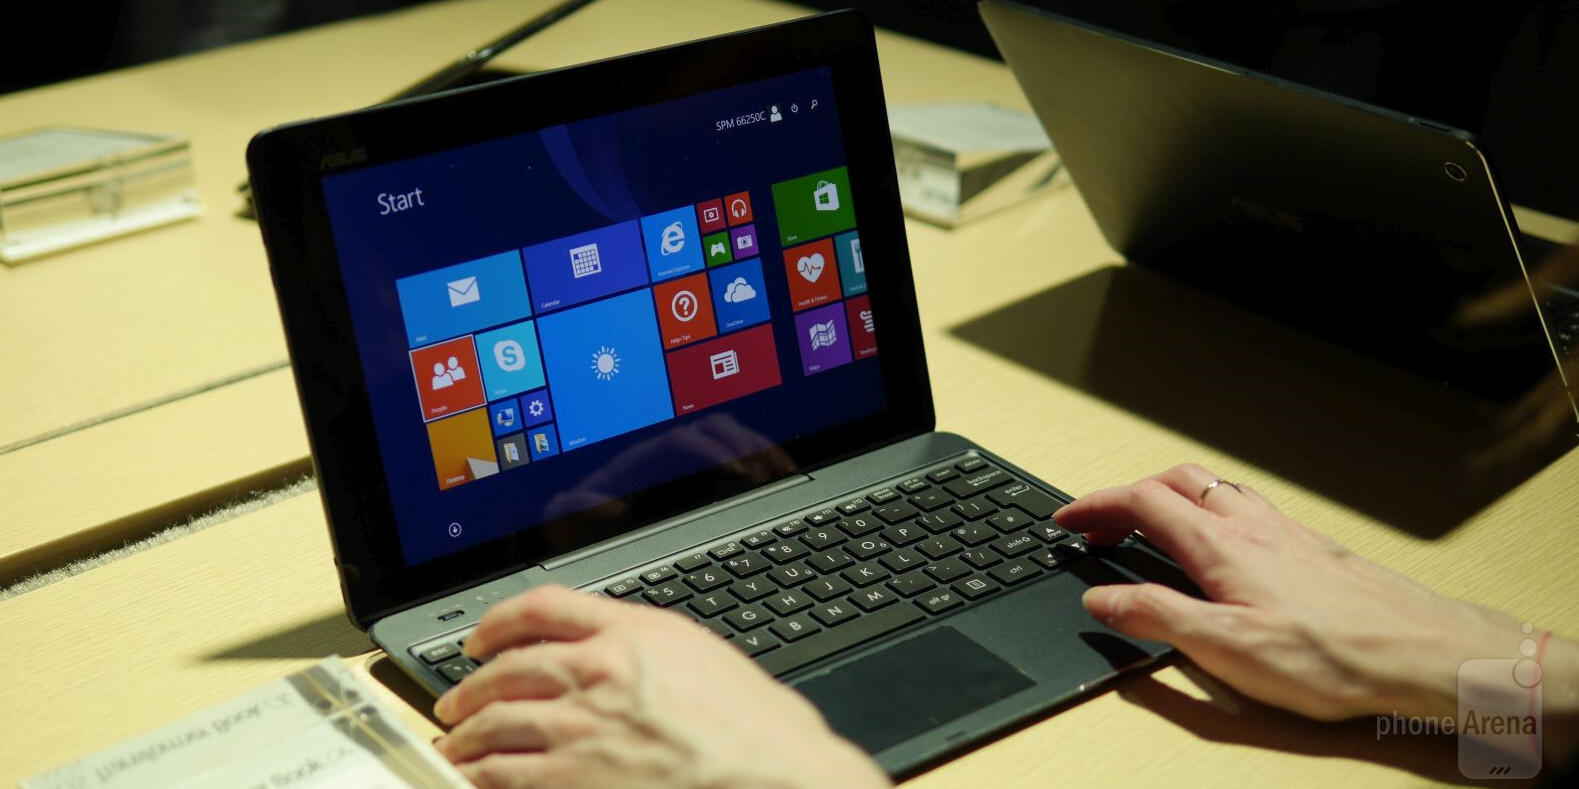 [Hands on] Asus Transformer Book T100 Chi - 60235